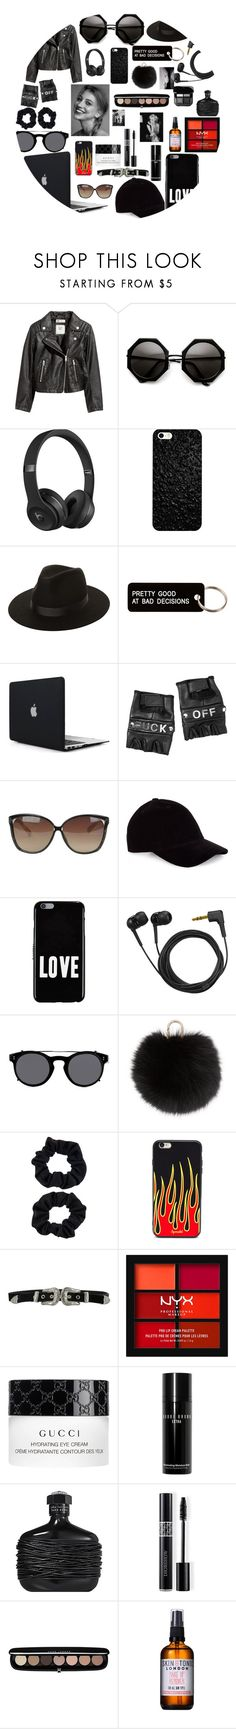 """Biker😎🖤"" by loveyourselfiee ❤ liked on Polyvore featuring H&M, Beats by Dr. Dre, Lack of Color, Various Projects, Funk Plus, Linda Farrow, Le Amonie, Givenchy, Sennheiser and Valentino"